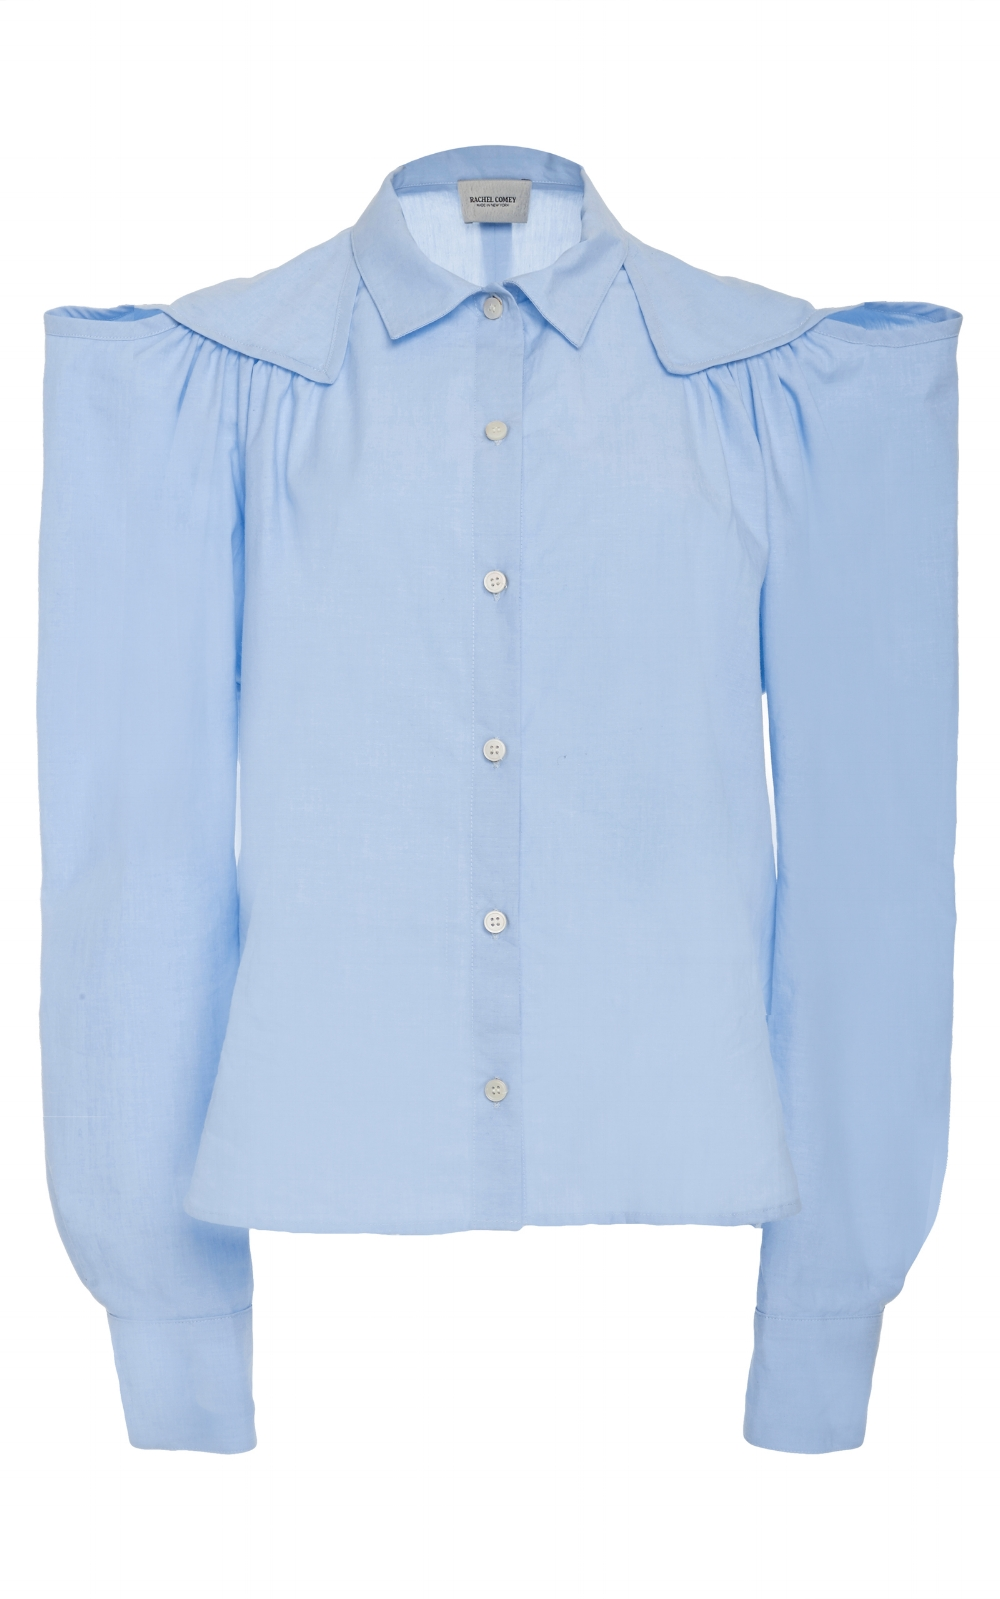 I love a blue collared shirt and this exaggerated one from Rachel Comey is a fantastic option to pair with all of these trousers. With just enough interest,femininity and quirk.